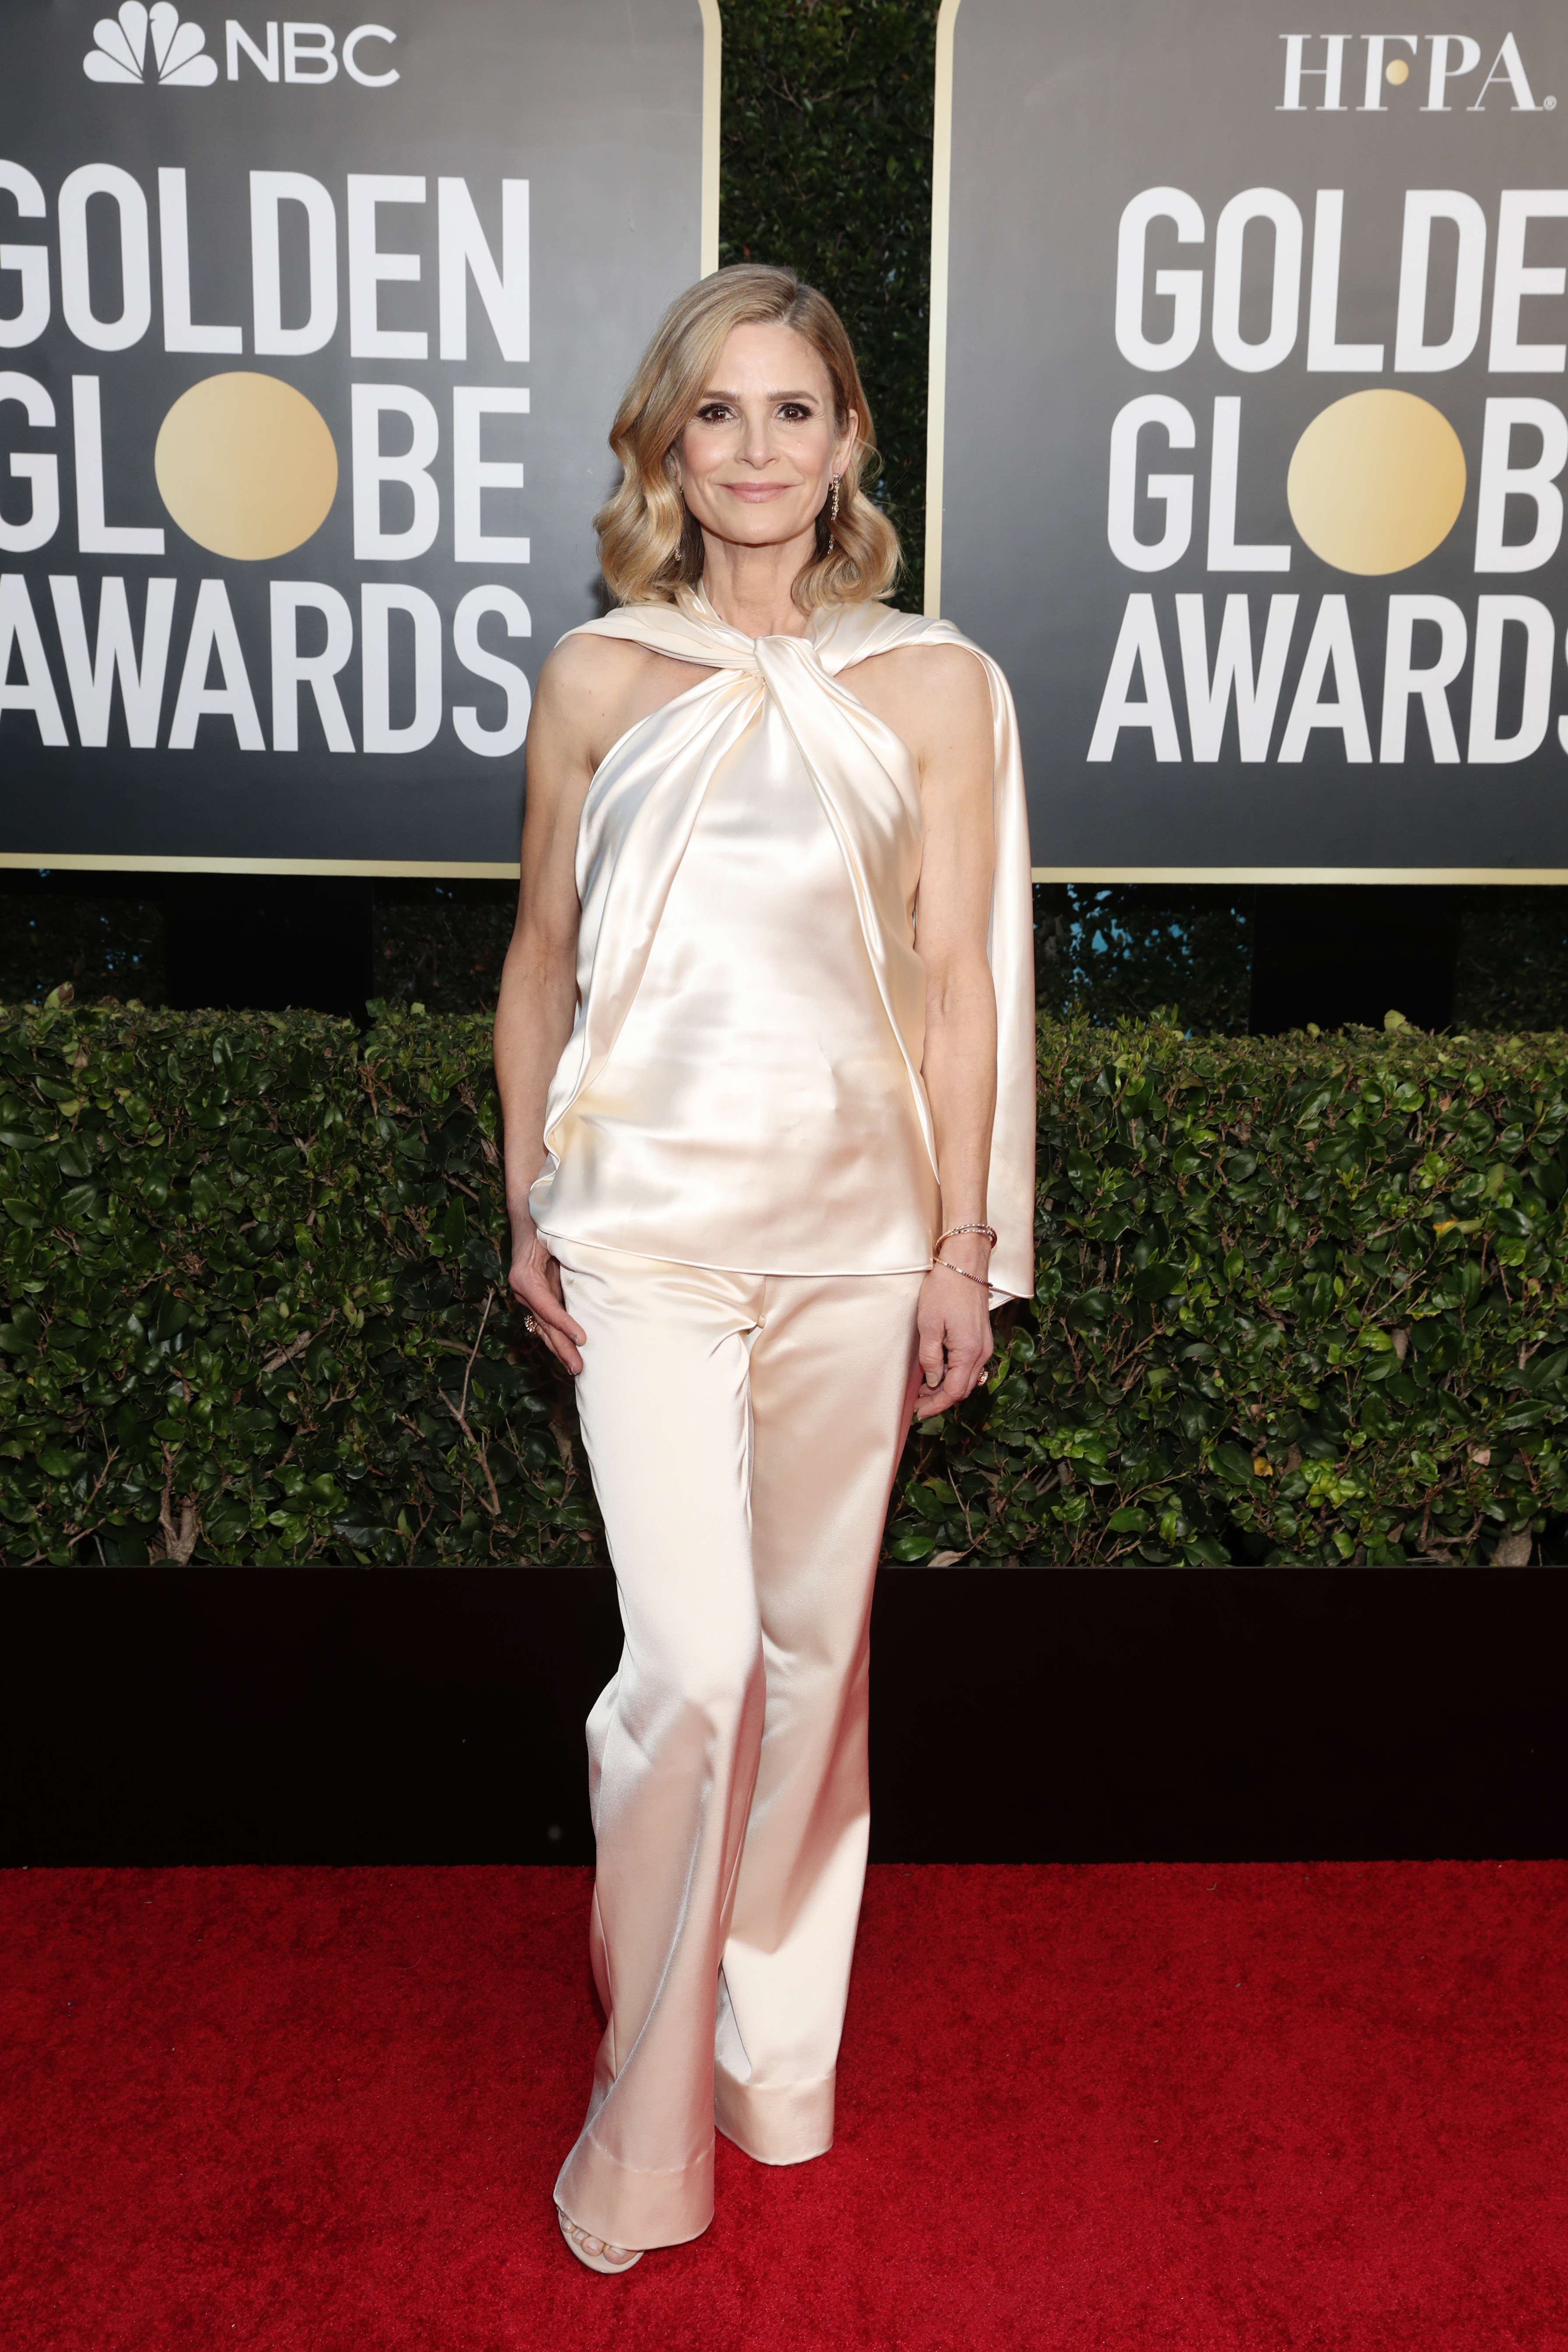 Kyra Sedgwick at an event for 2021 Golden Globe Awards (2021)